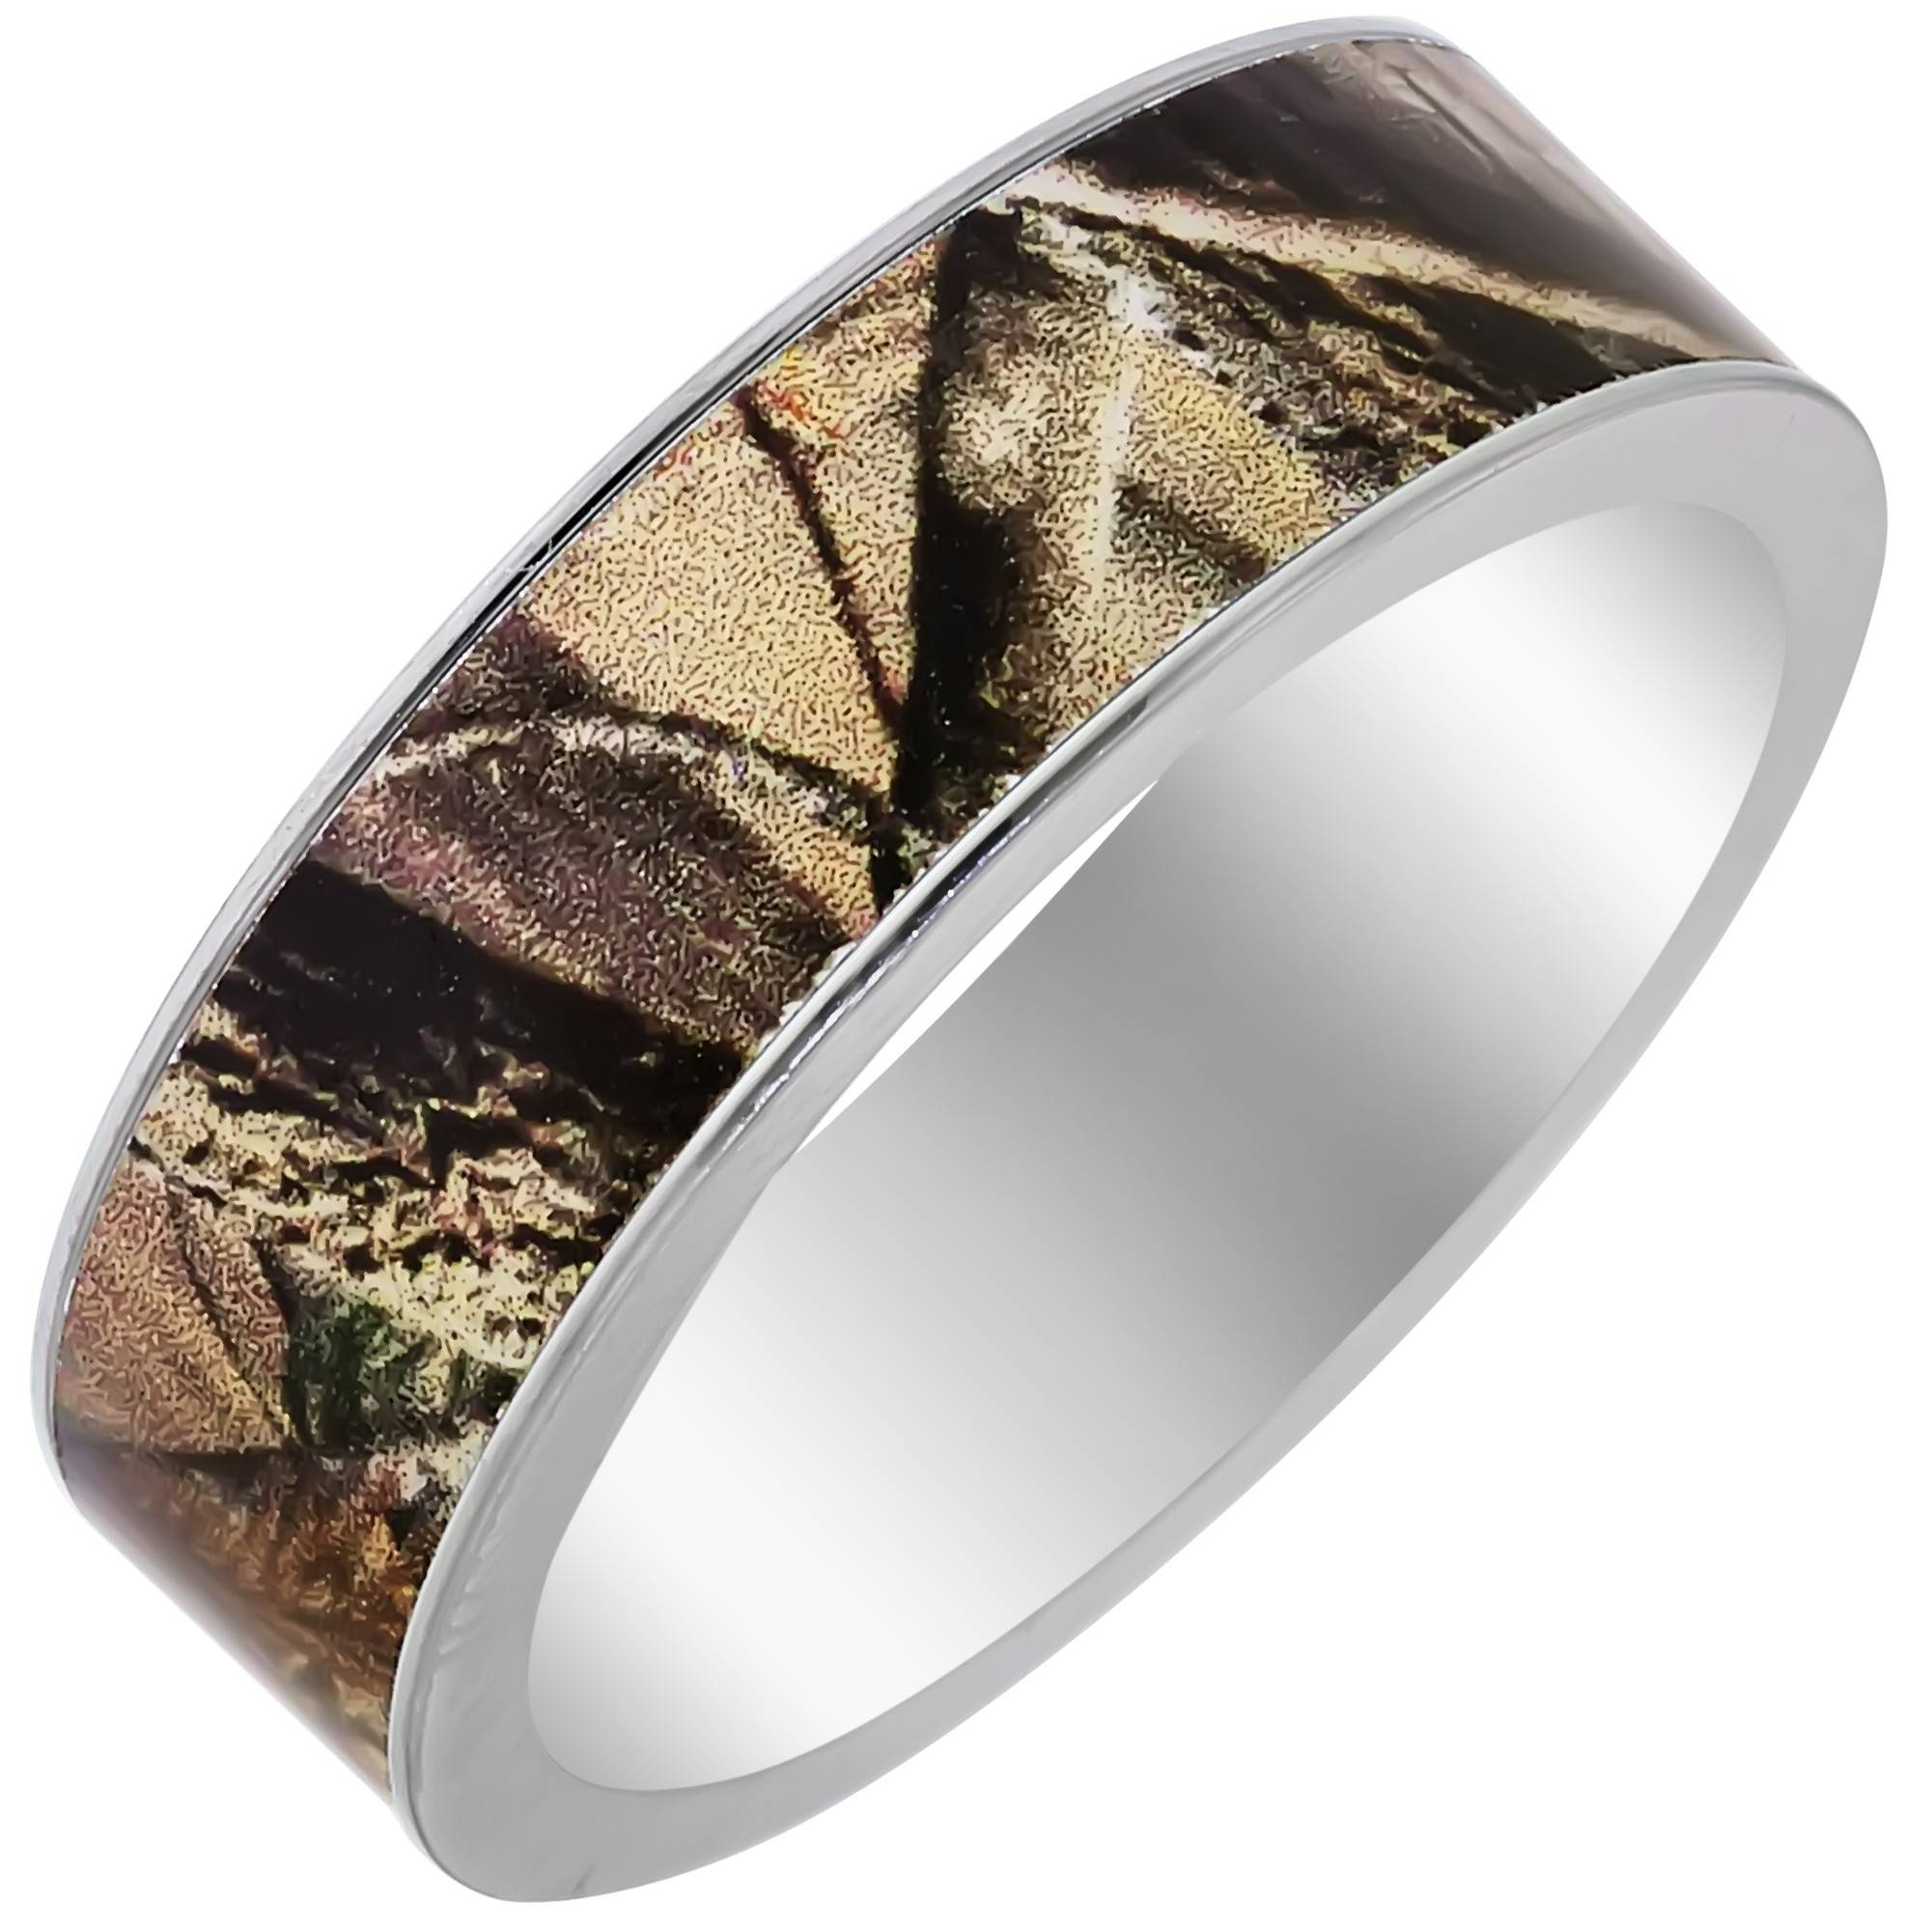 Mens Camouflage Wedding Band In Titanium (7Mm) Intended For Mens Camouflage Wedding Bands (Gallery 1 of 15)